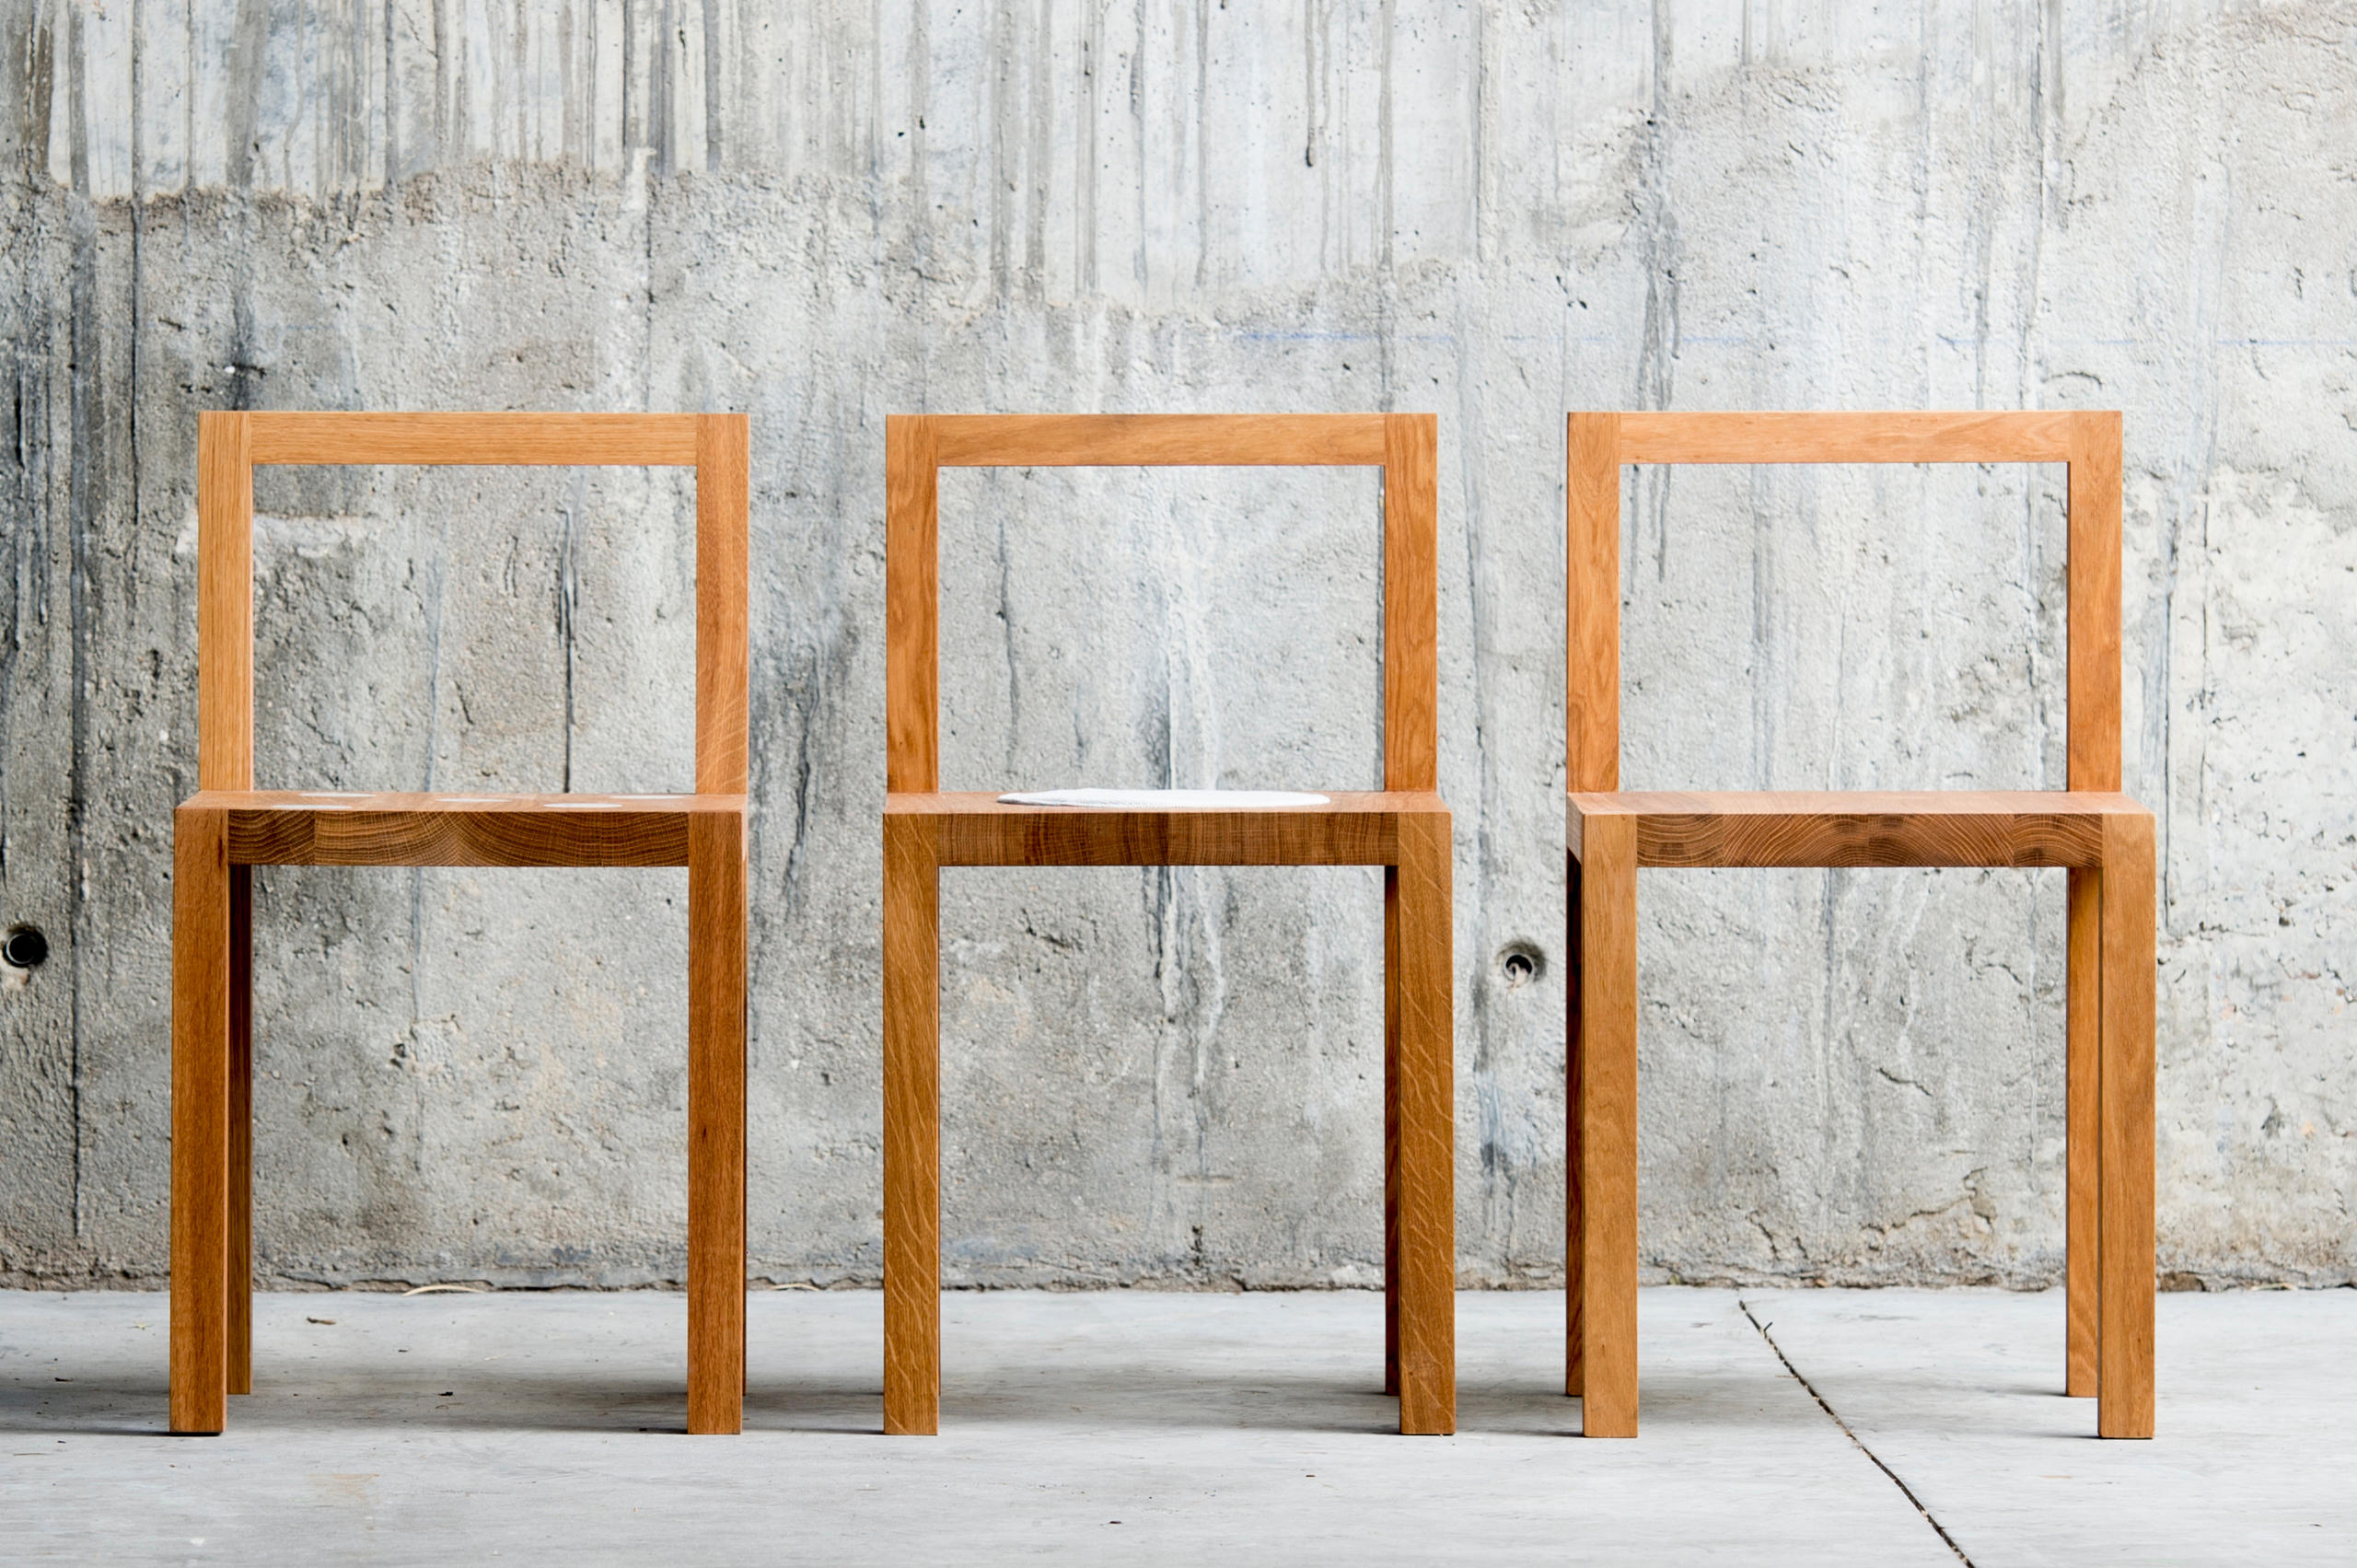 QOWOOD CHAIR - Garden chairs from QoWood | Architonic